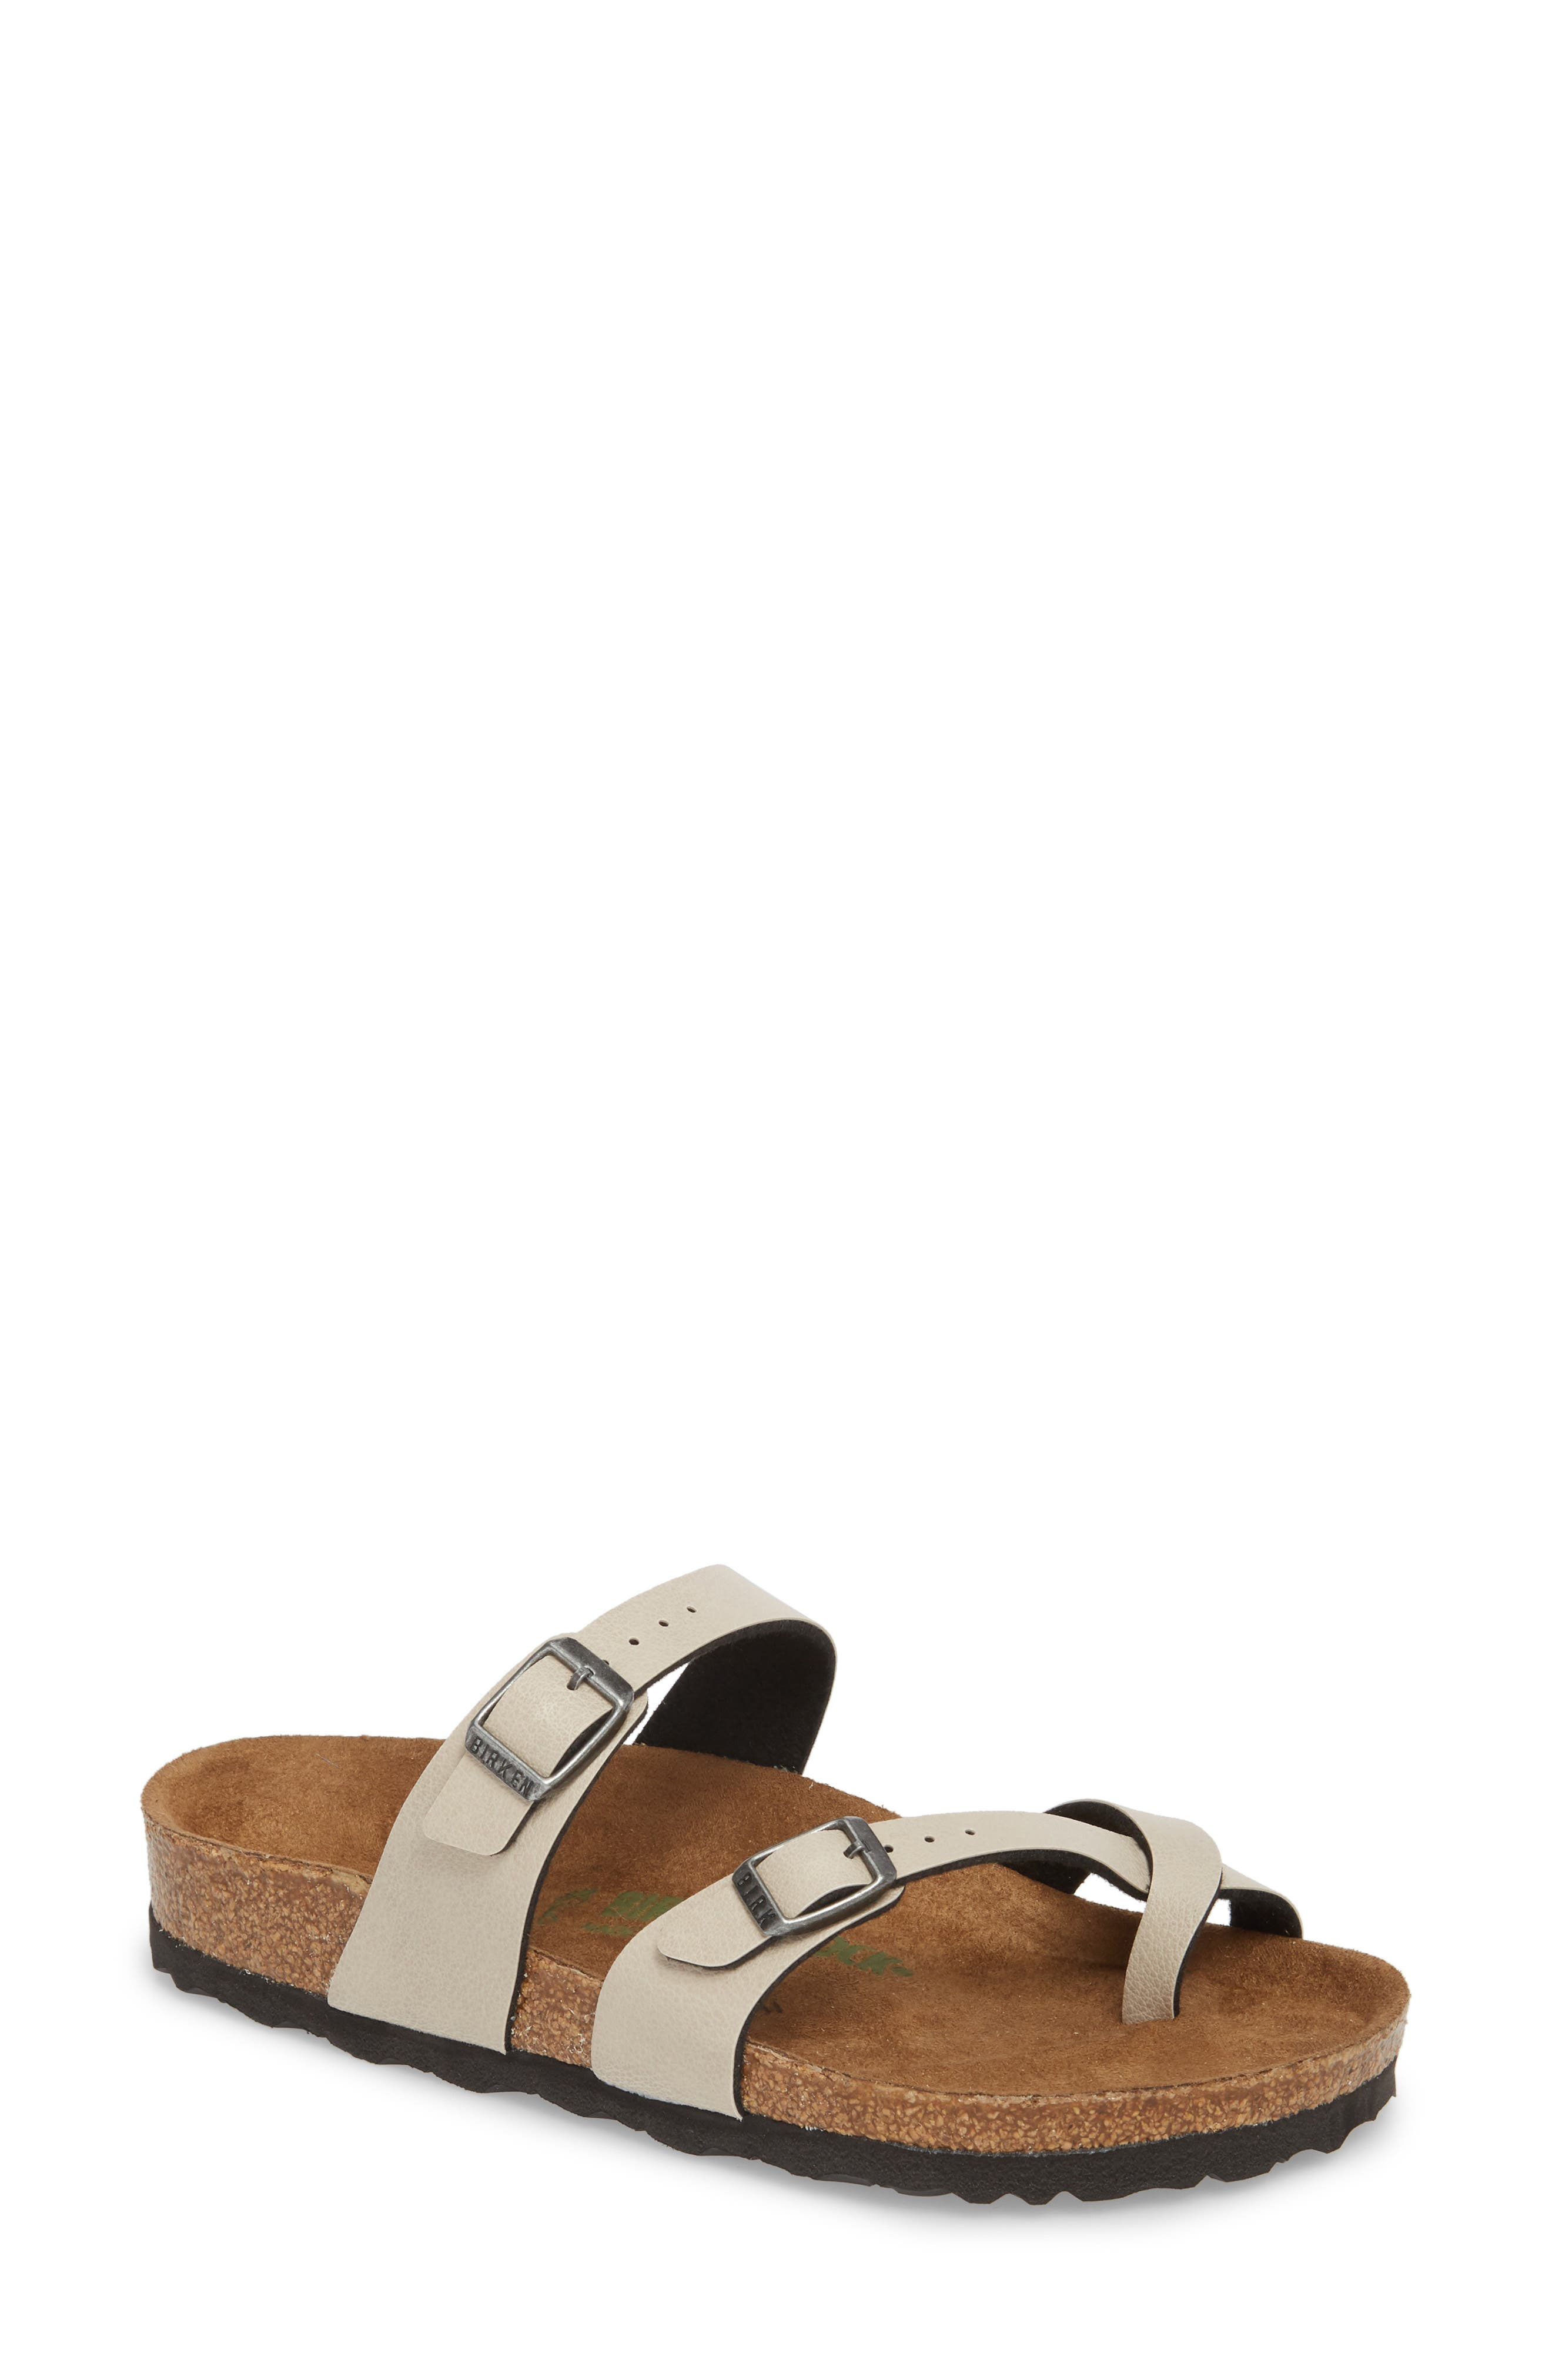 Mayari Birko-Flor<sup>™</sup> Slide Sandal,                         Main,                         color, Pull Up Stone Faux Leather